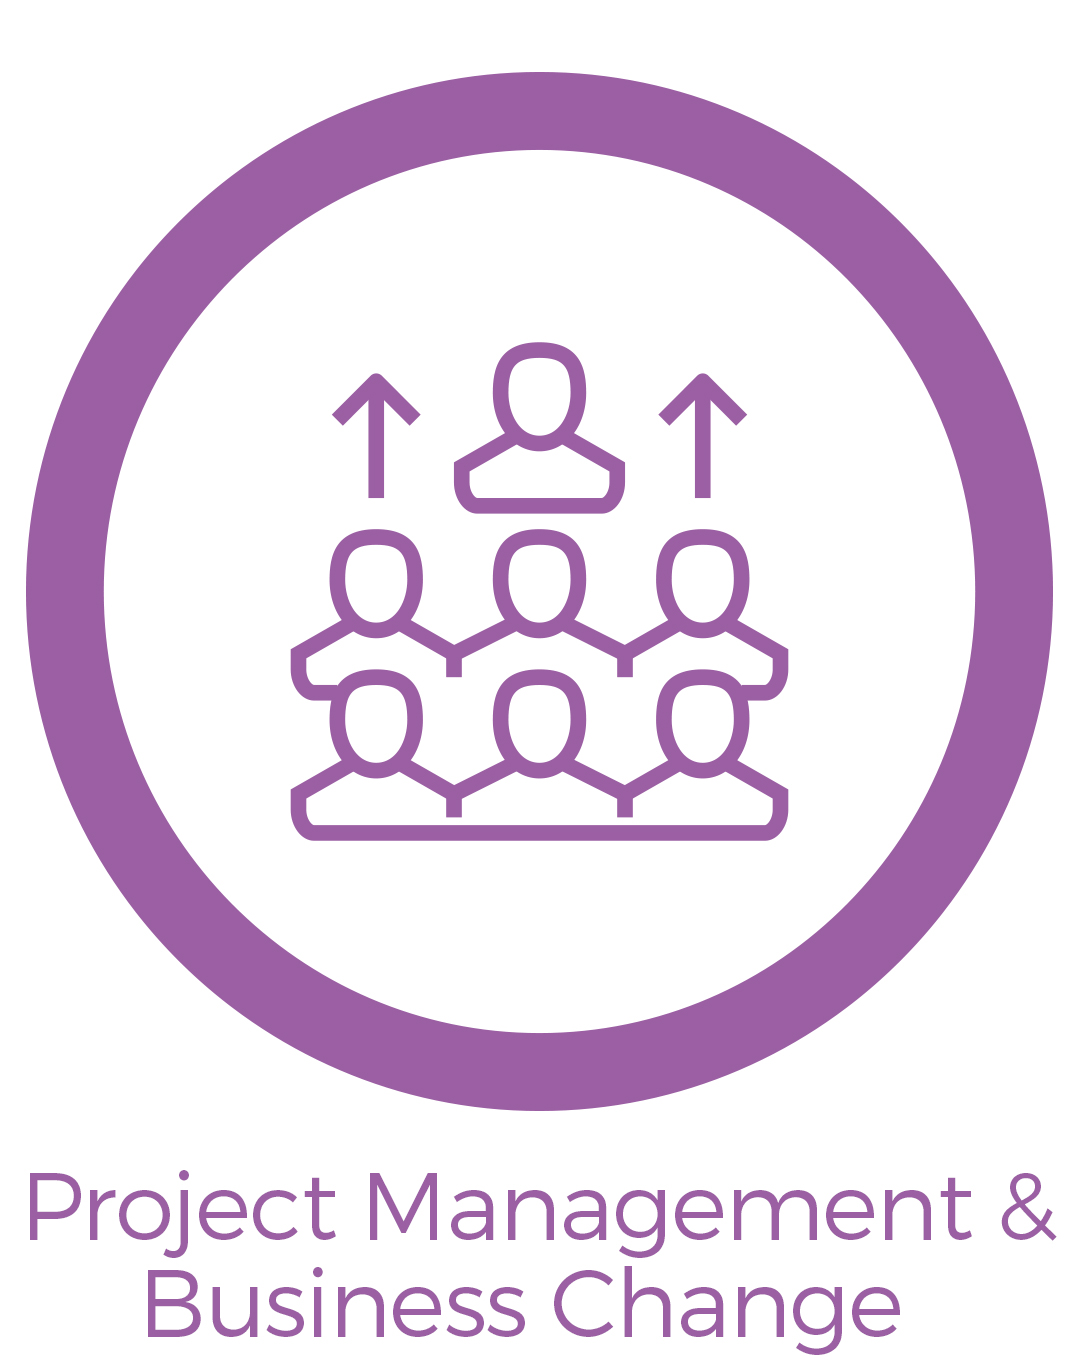 Project Management and Business Change recruitment